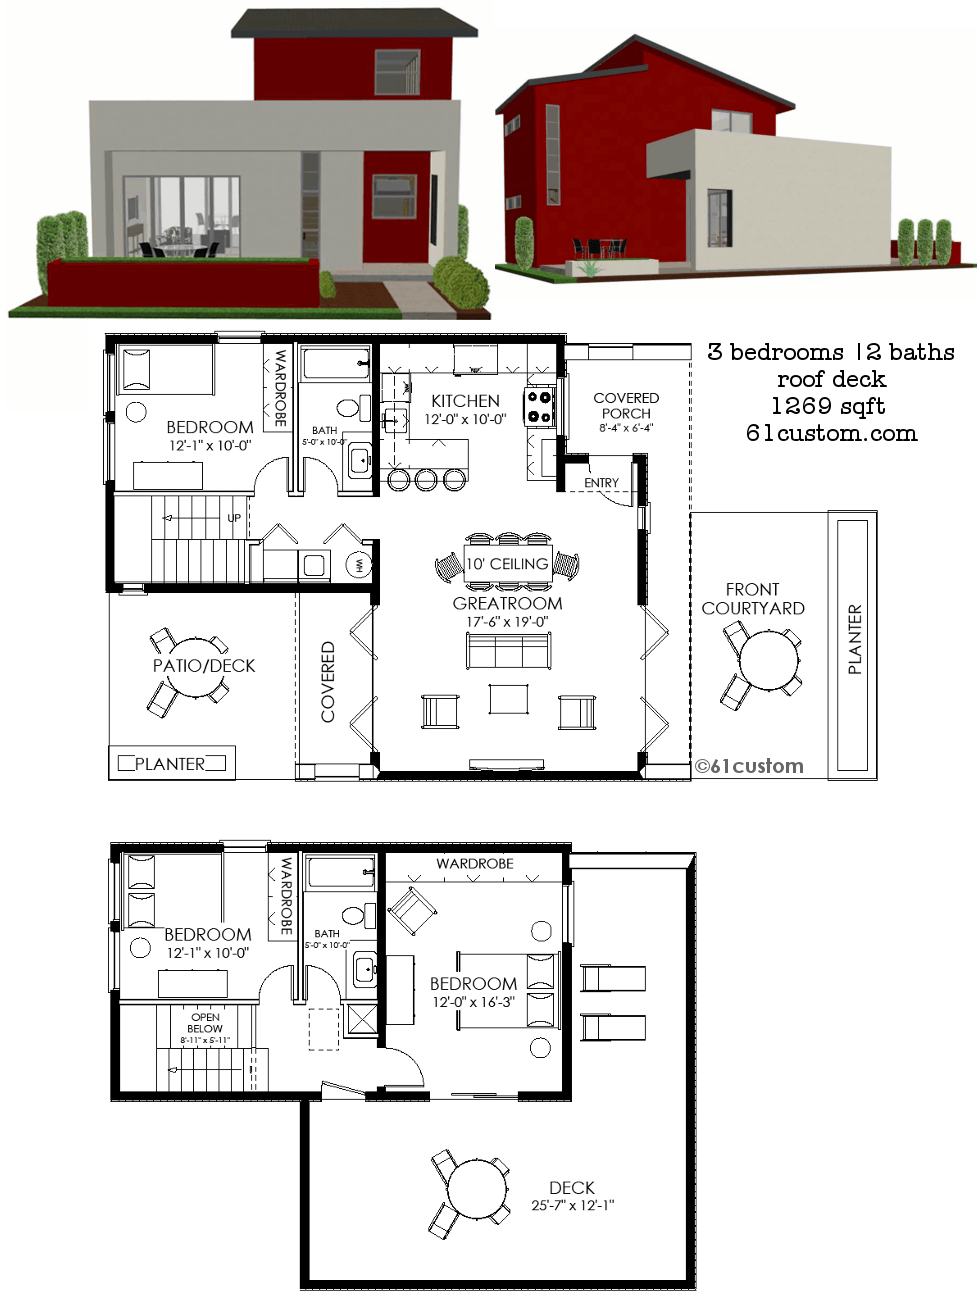 Contemporary small house plan 61custom contemporary House layout design